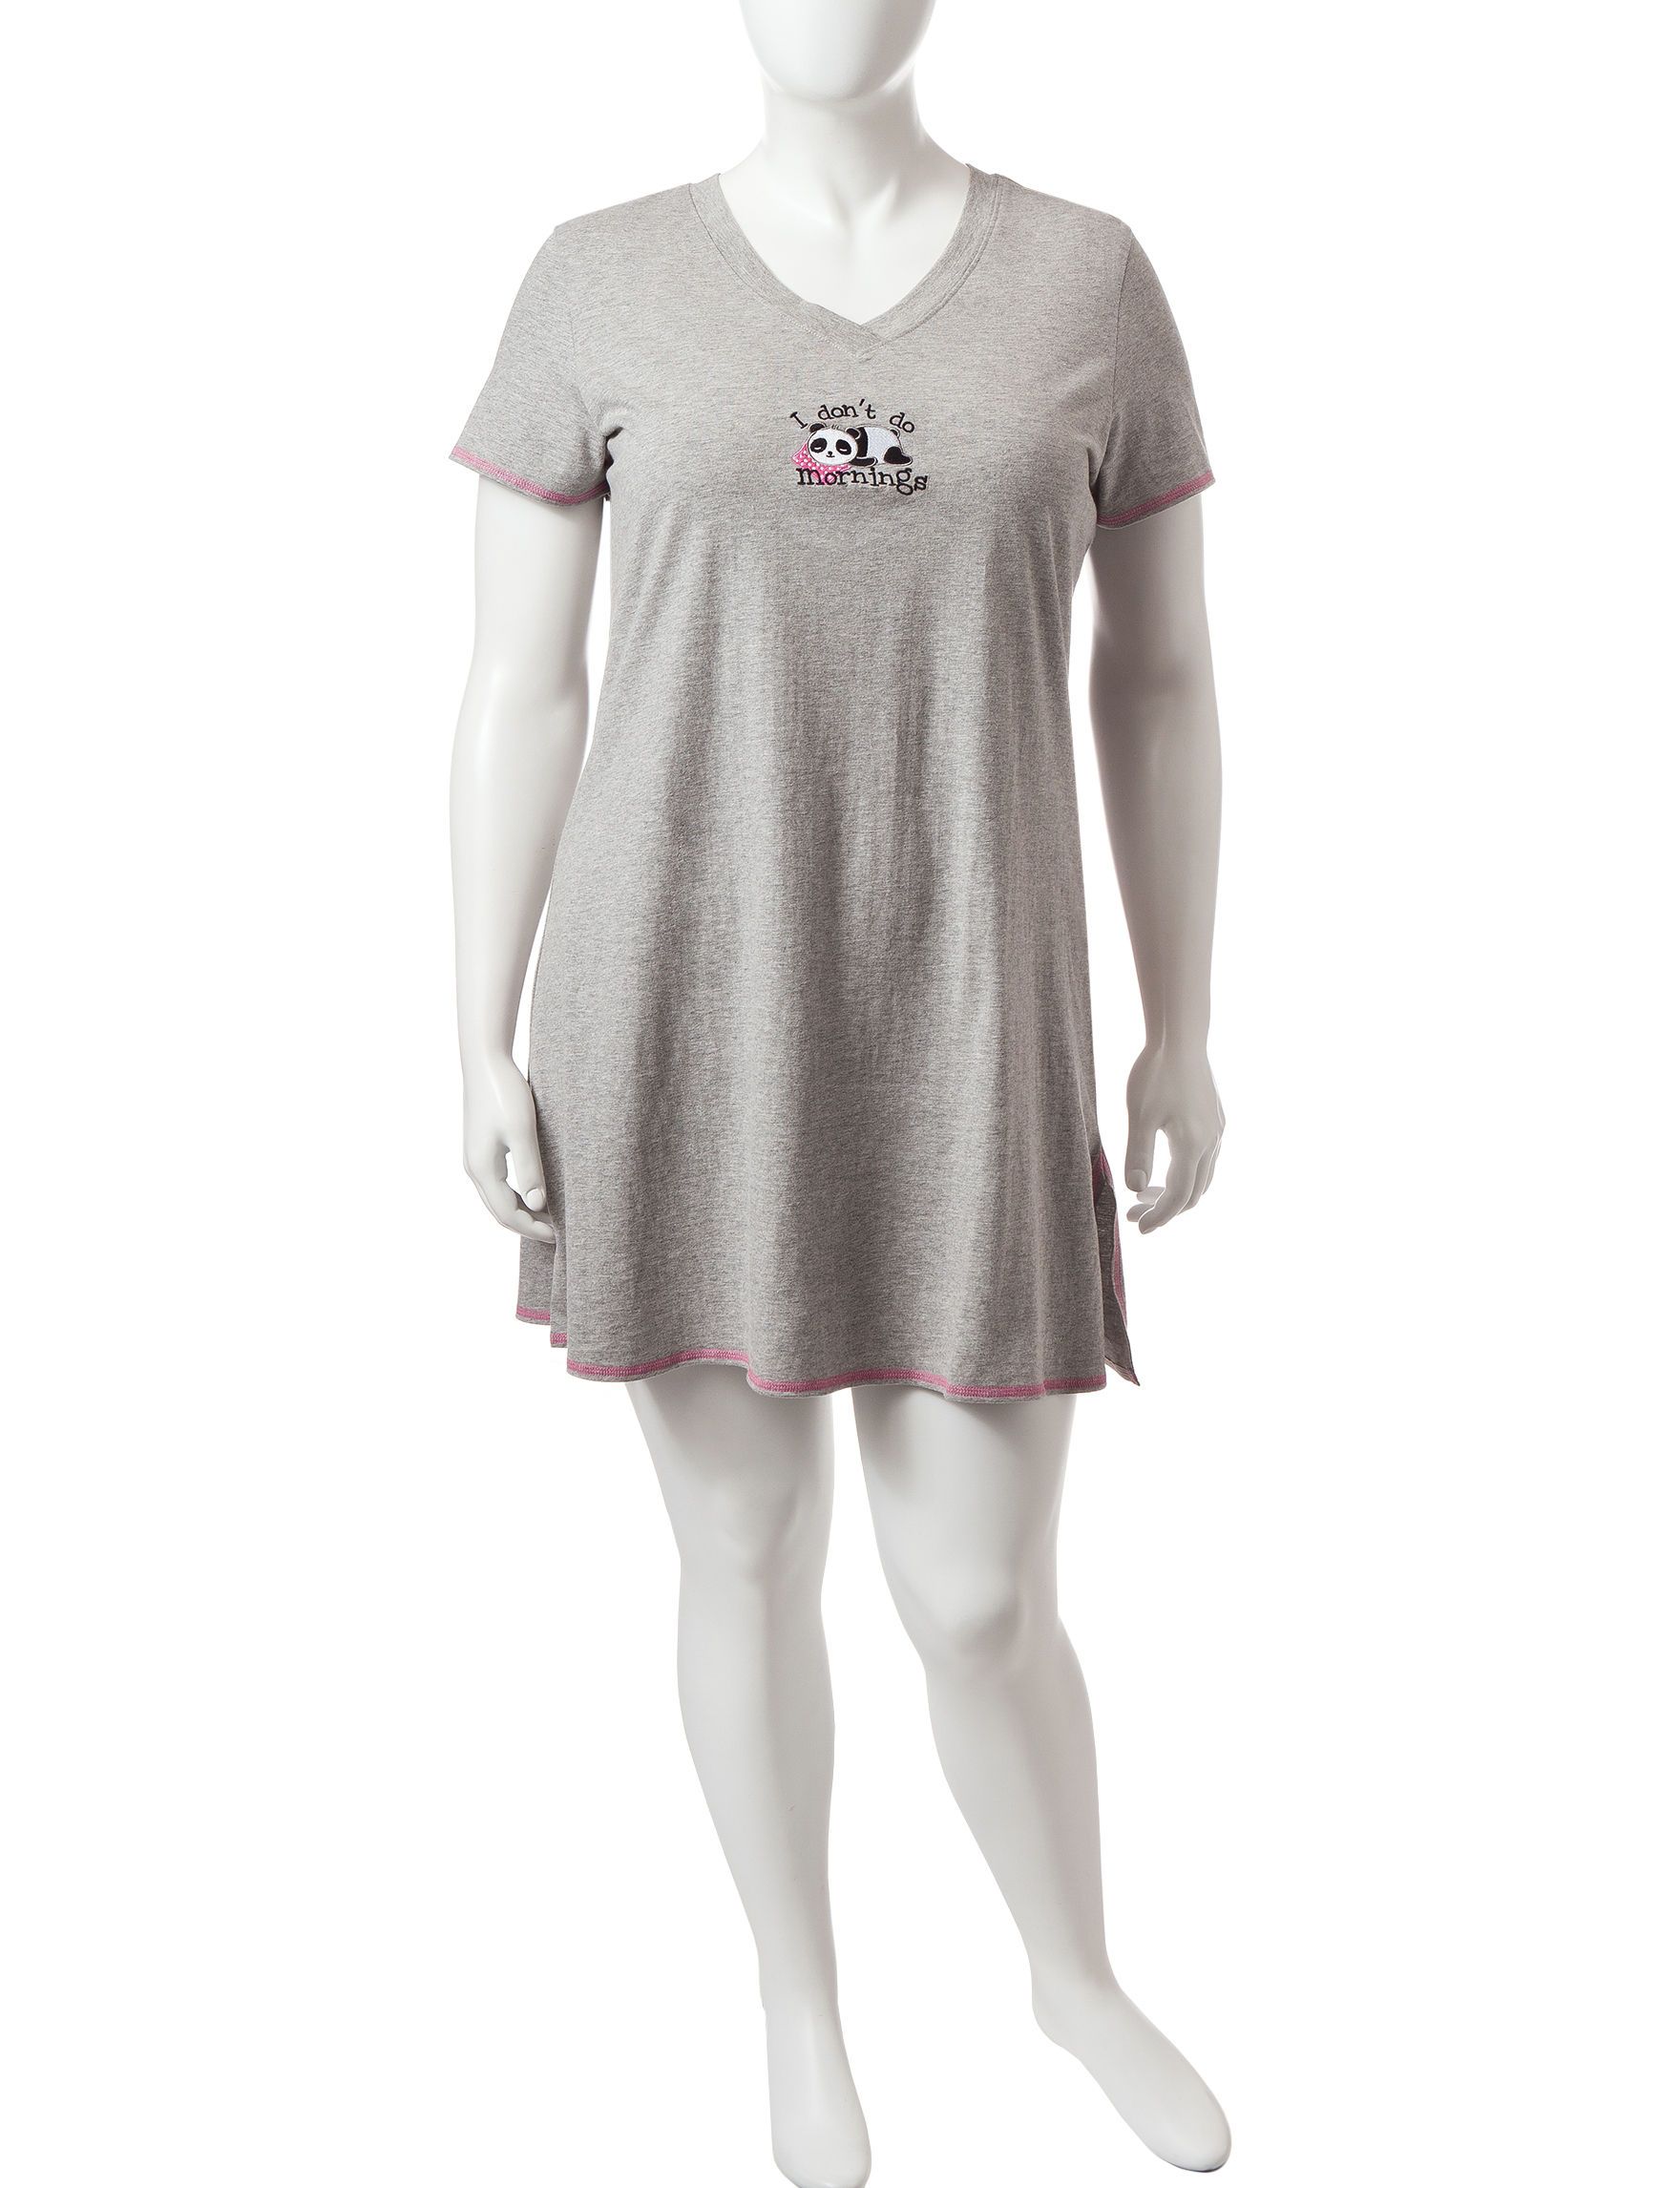 Rene Rofe Heather Grey Pajama Tops